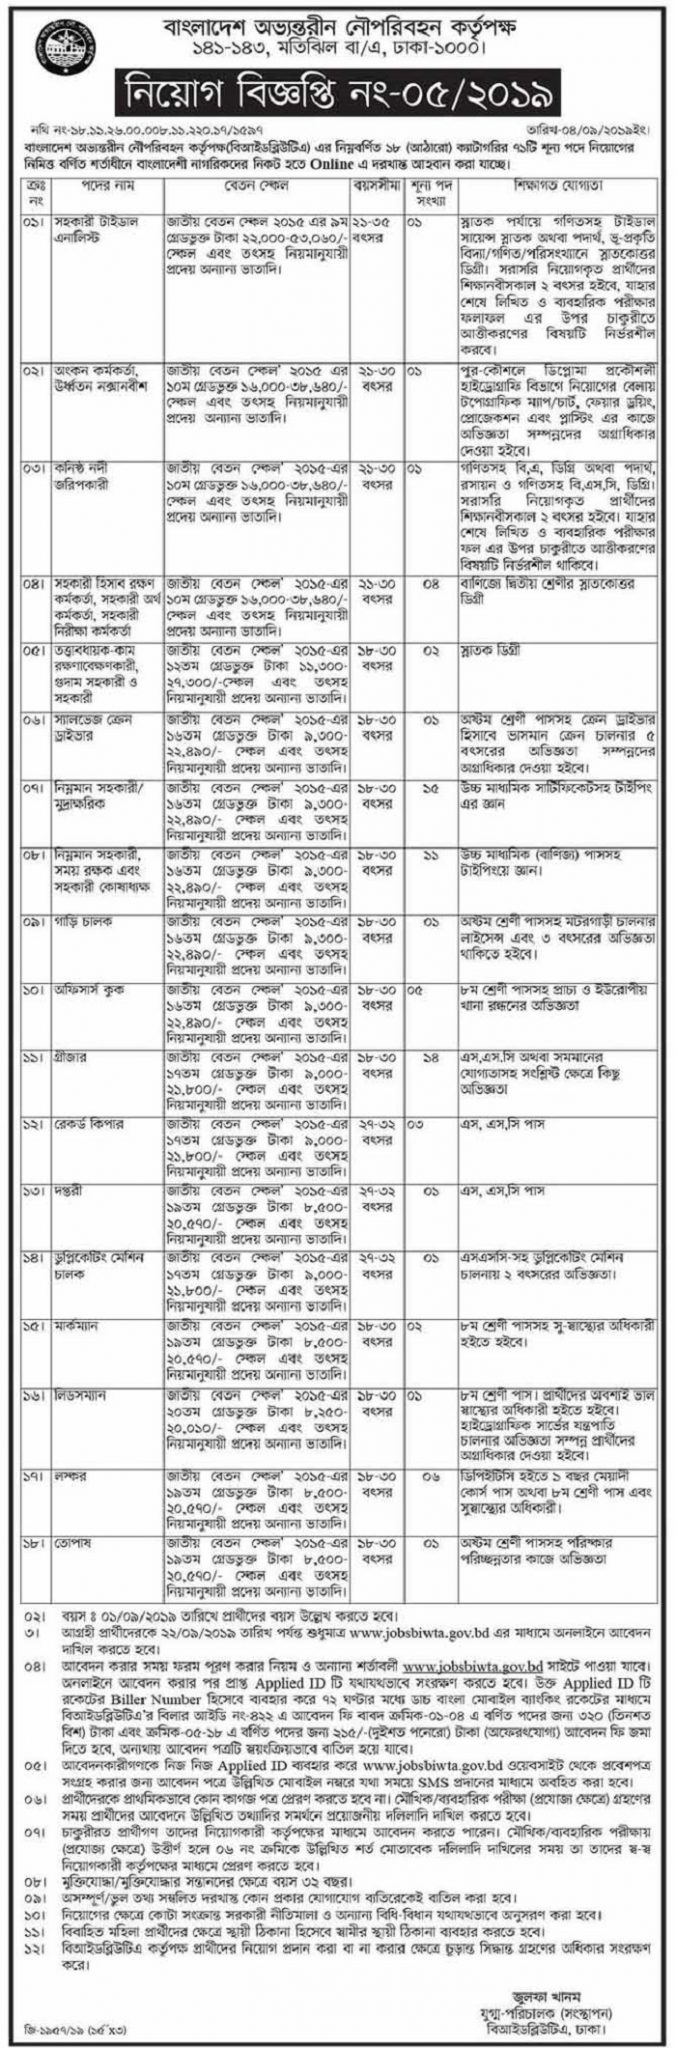 Bangladesh Inland Water Transport Corporation (BIWTC) Job Circular 2019